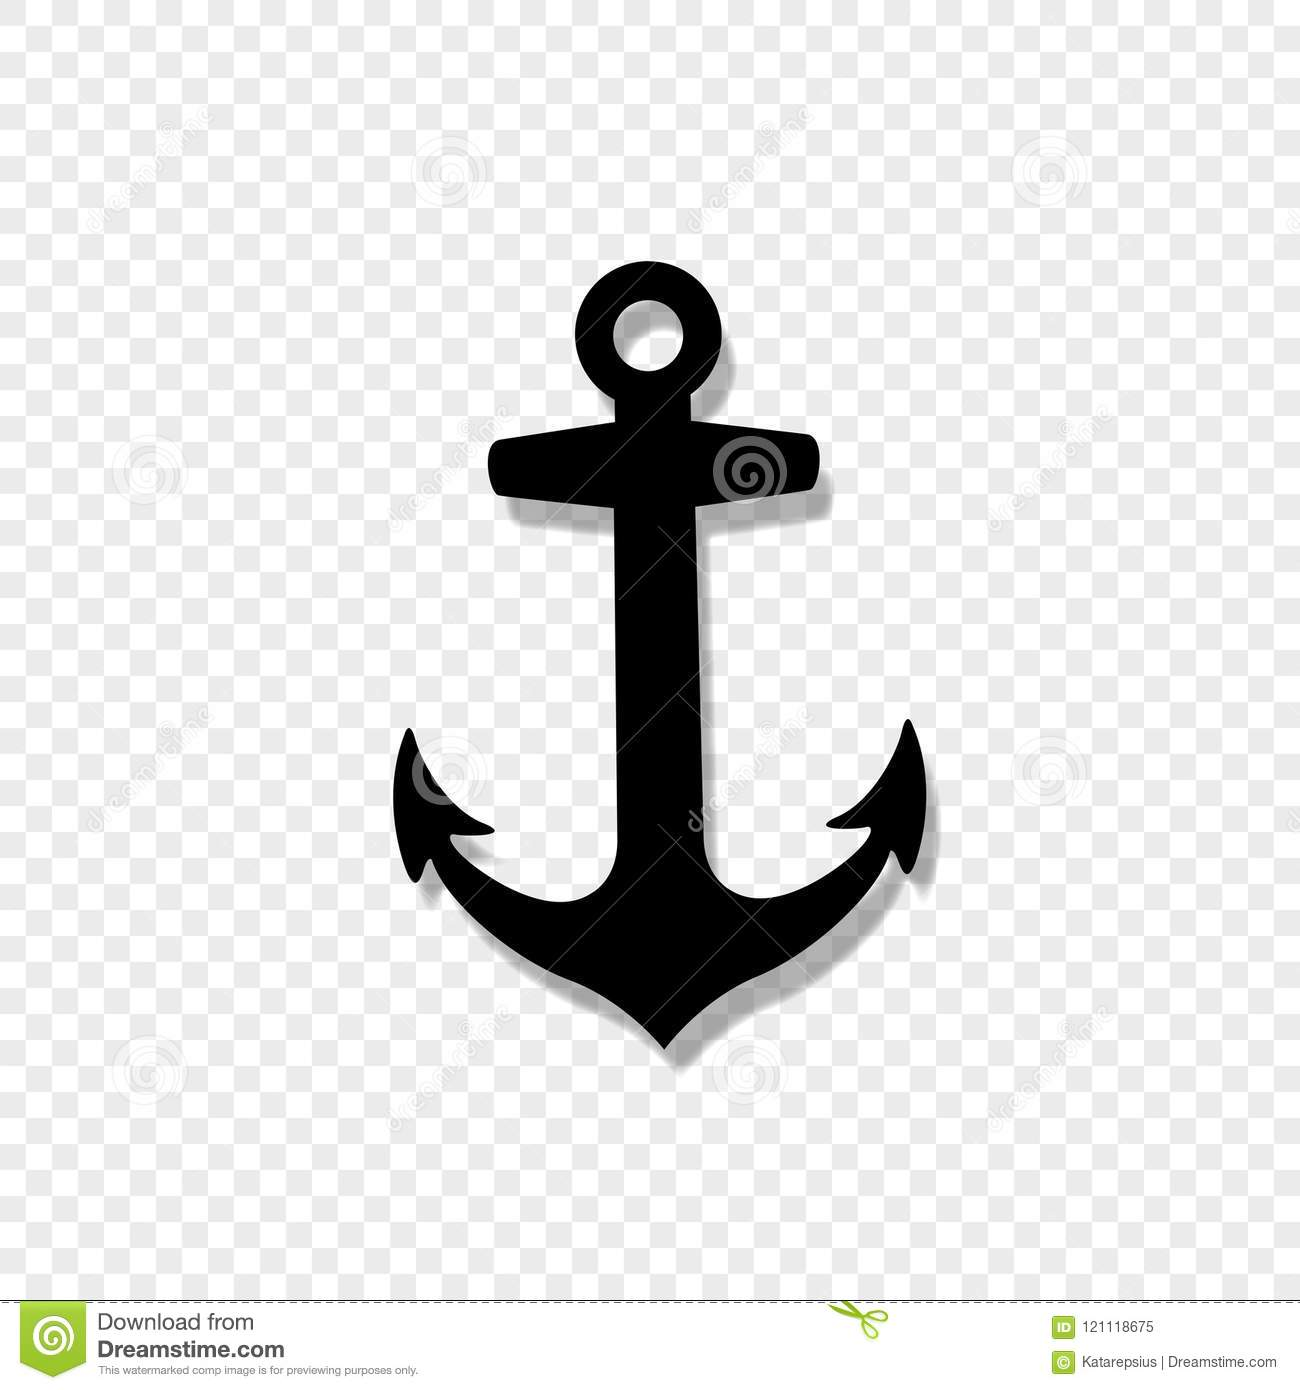 Anchor Armature Icon Isolated On Transparent Background